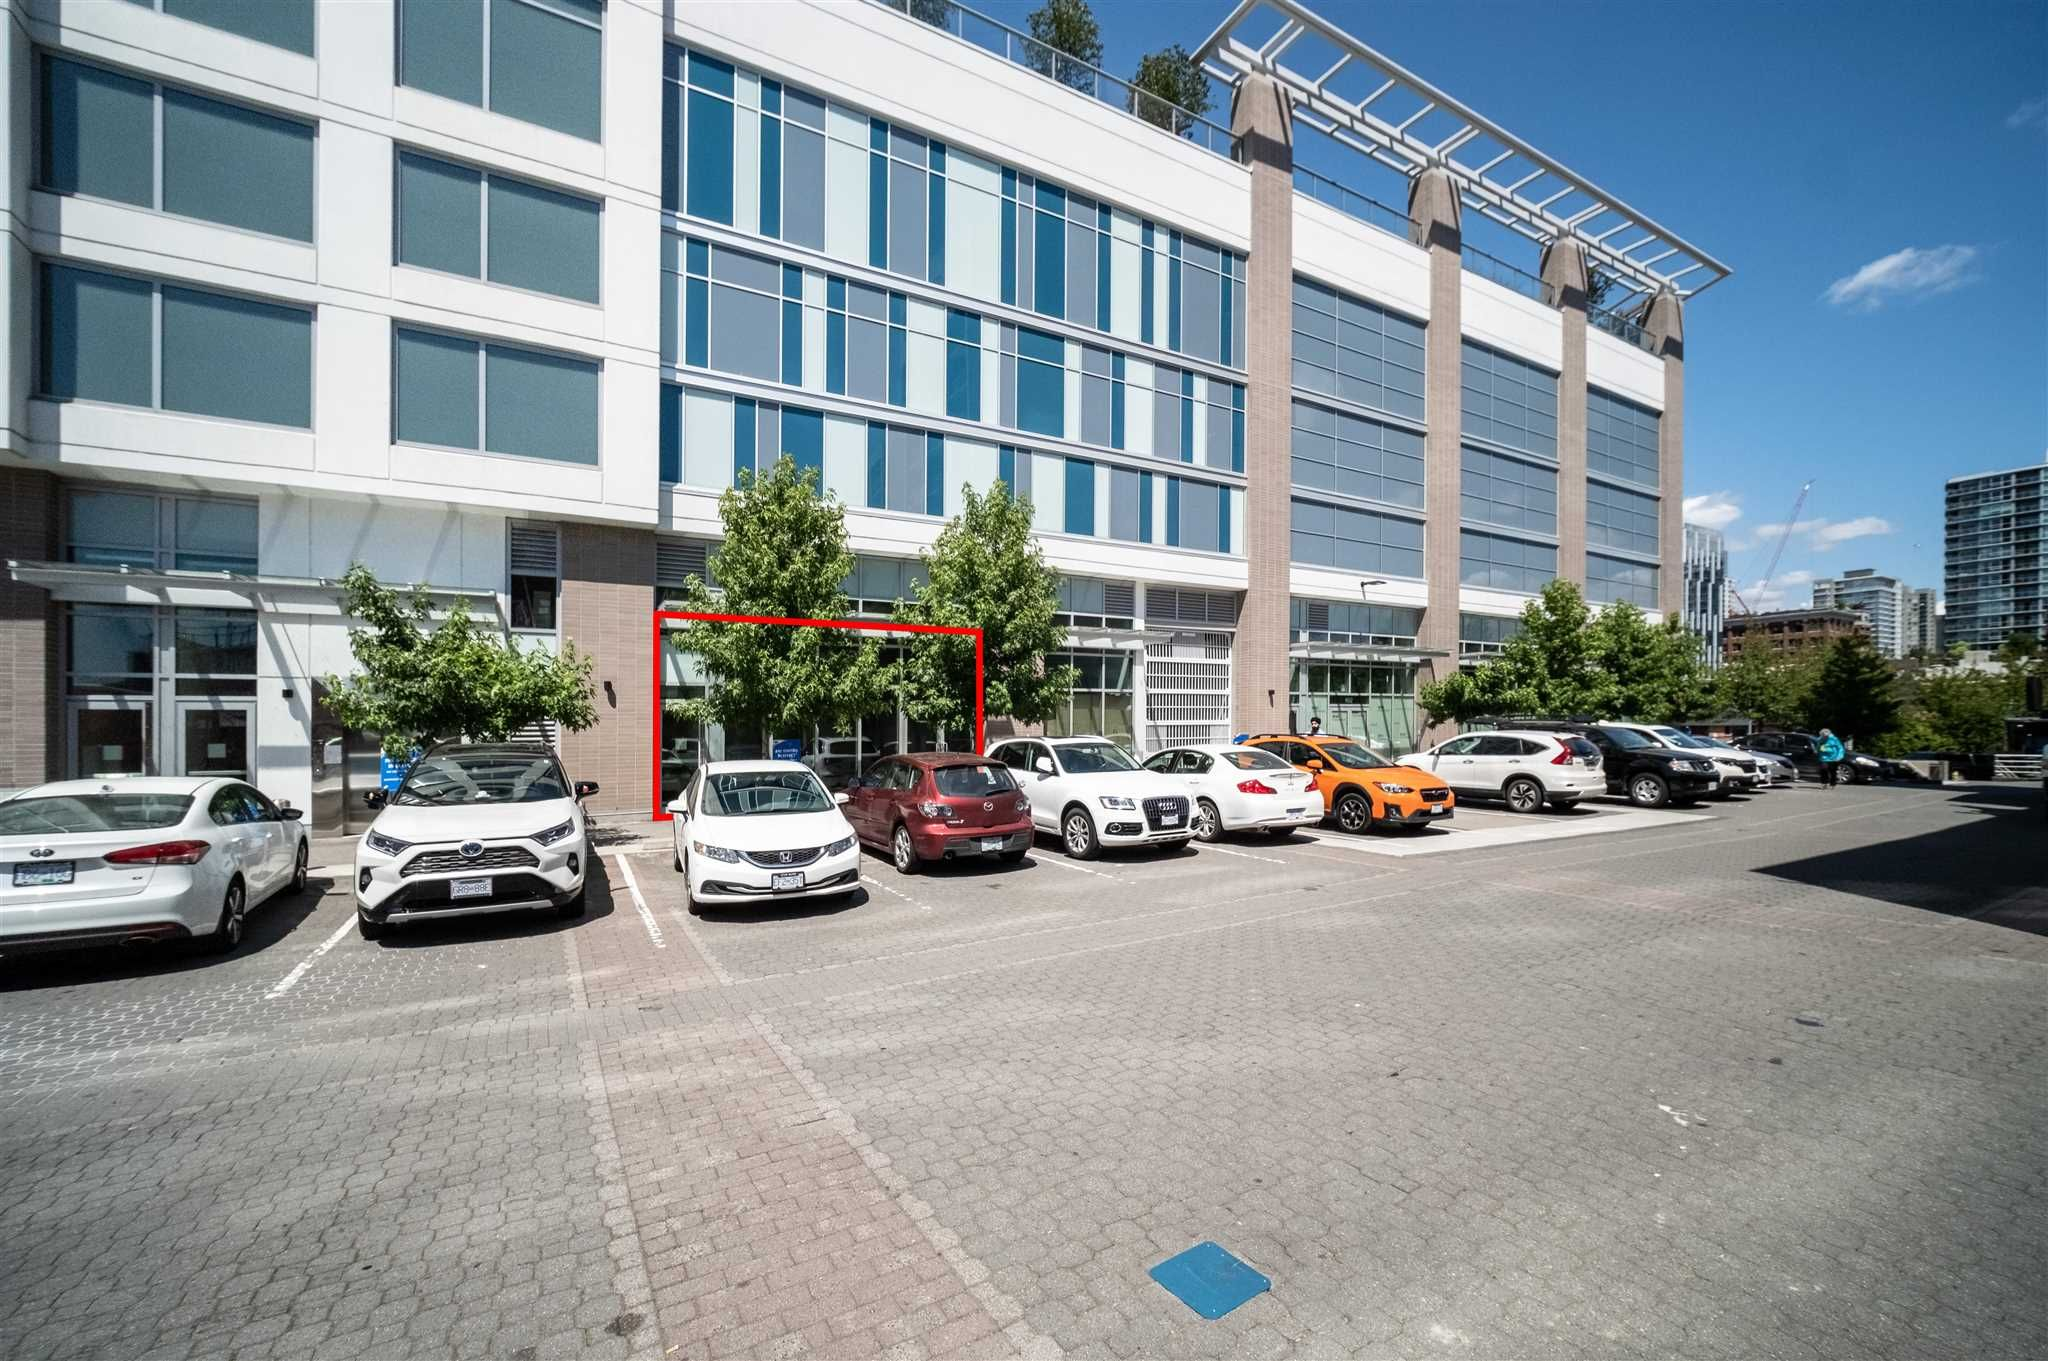 """Main Photo: CRU2 1000 QUAYSIDE Drive in New Westminster: Quay Retail for lease in """"Riversky"""" : MLS®# C8039598"""